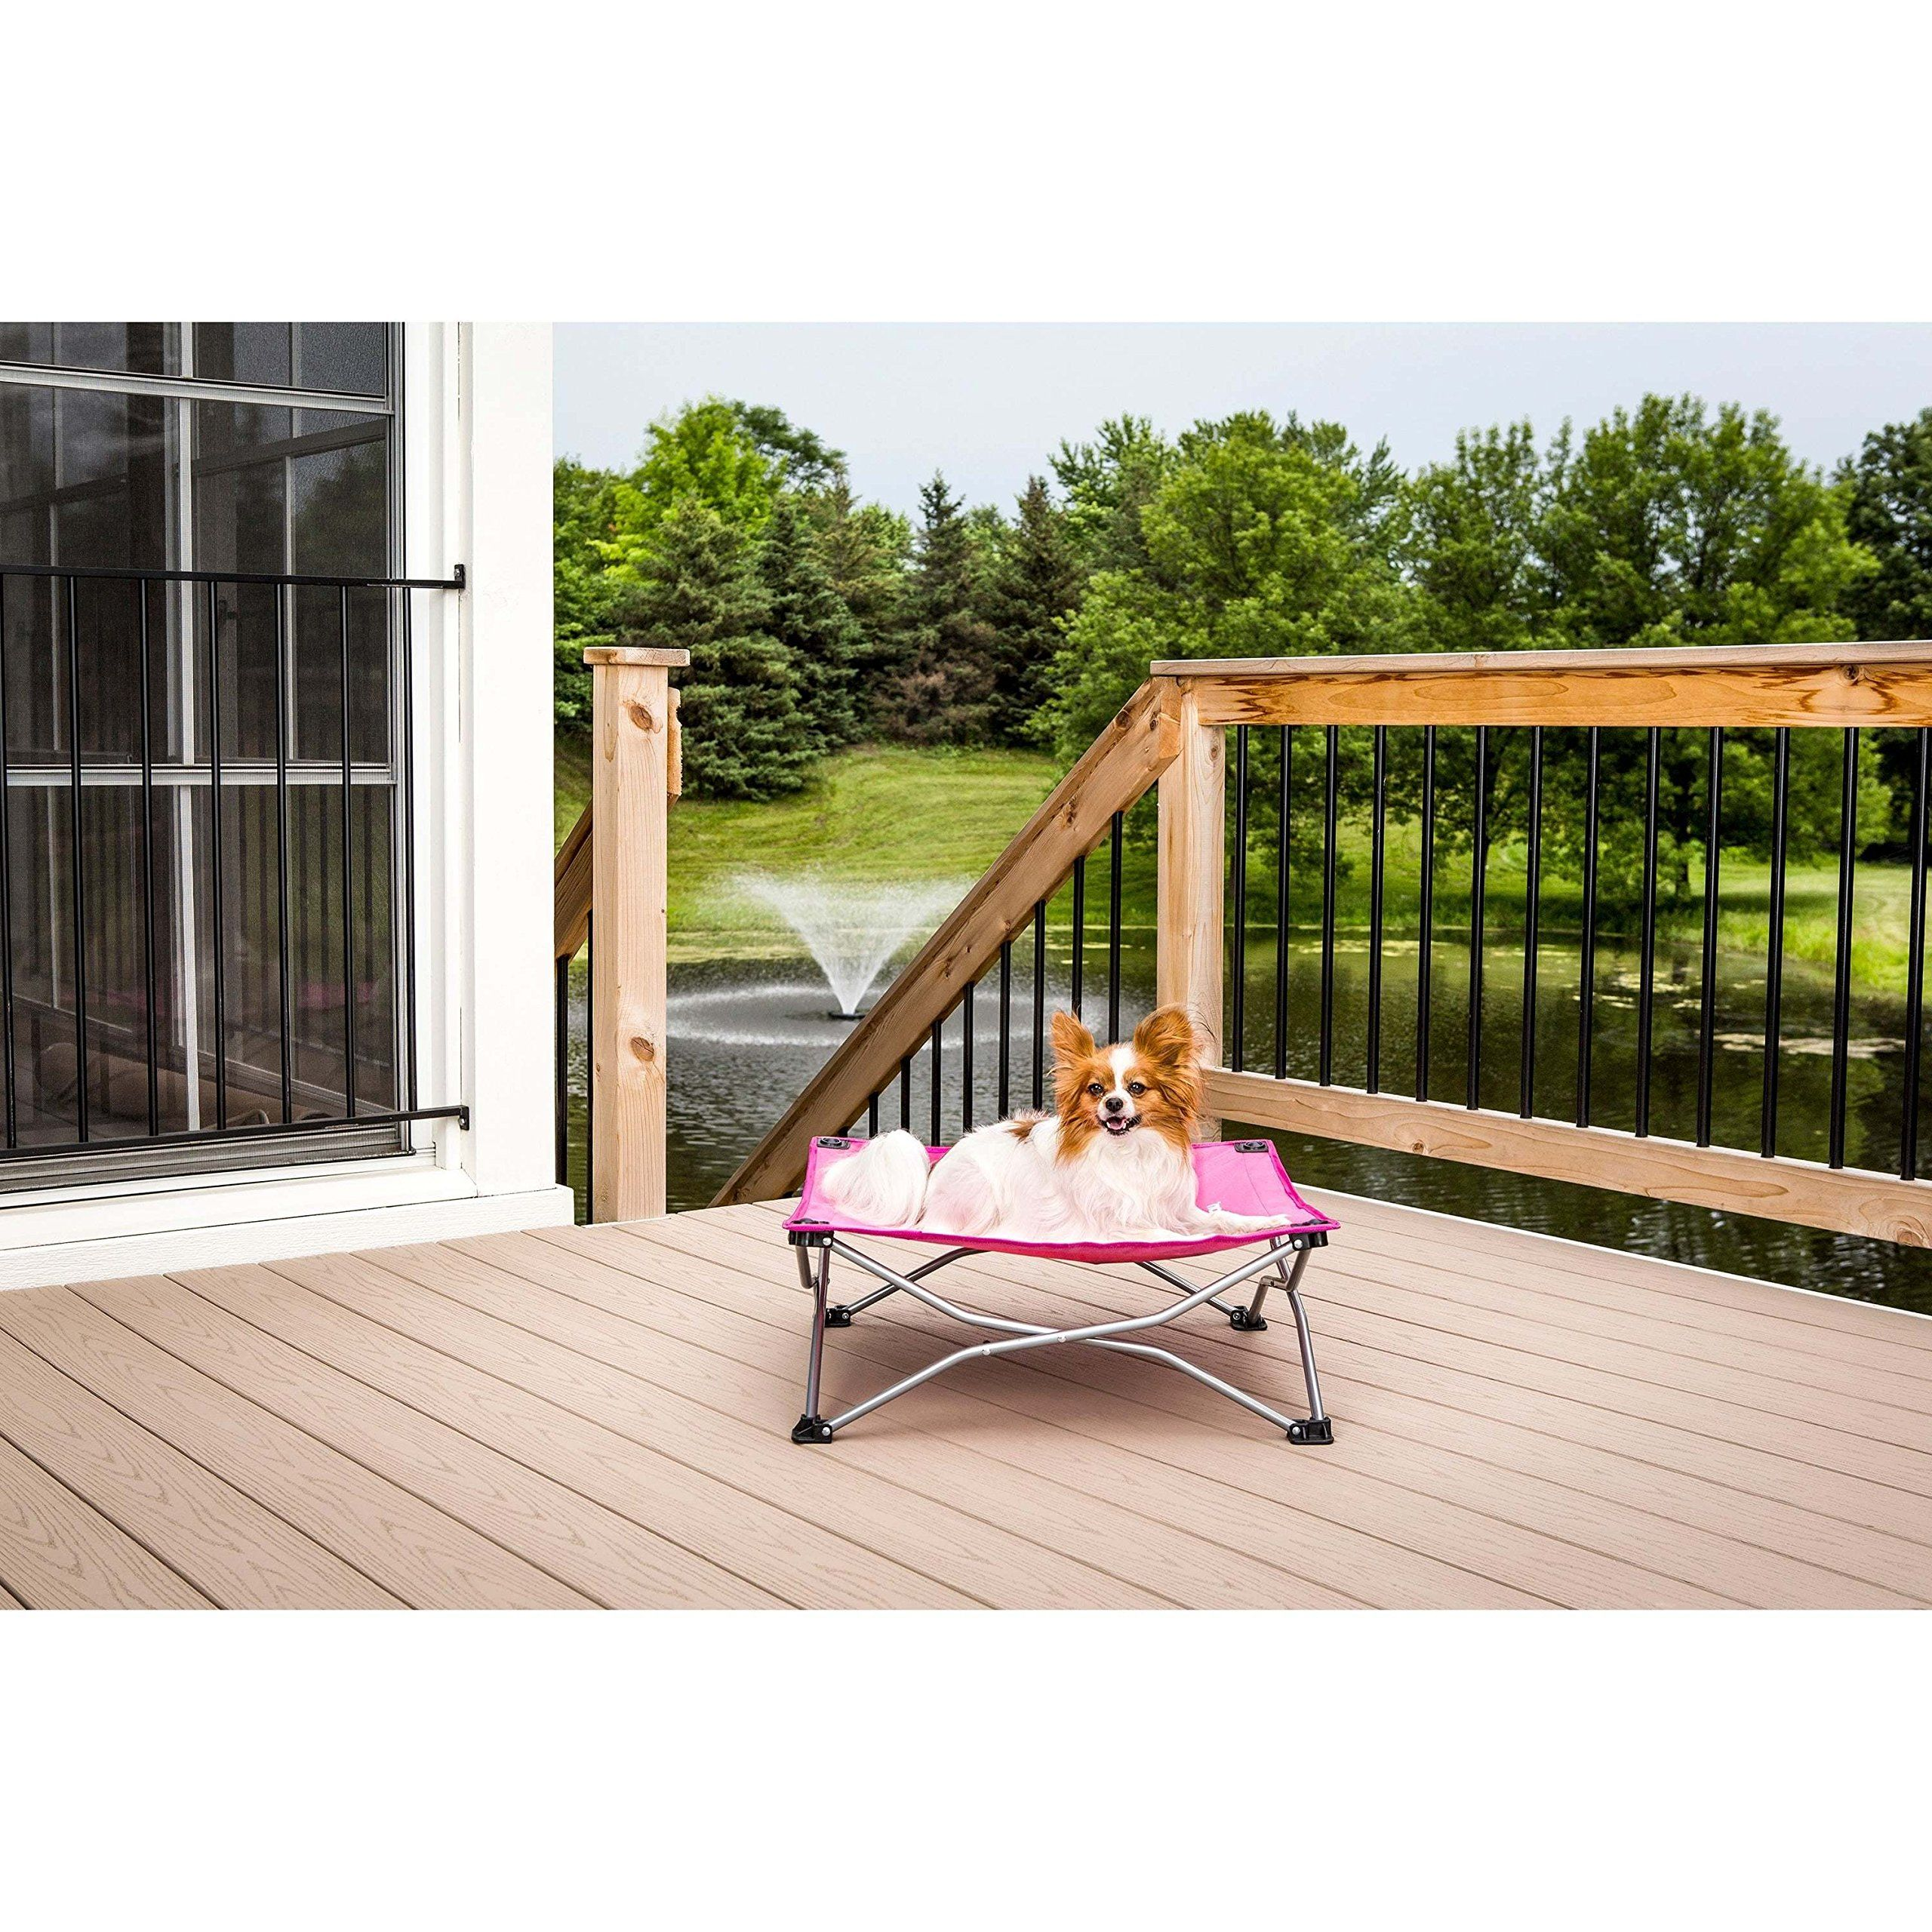 1 Piece Pink Small 24 Inches Indoor Outdoor Cooling